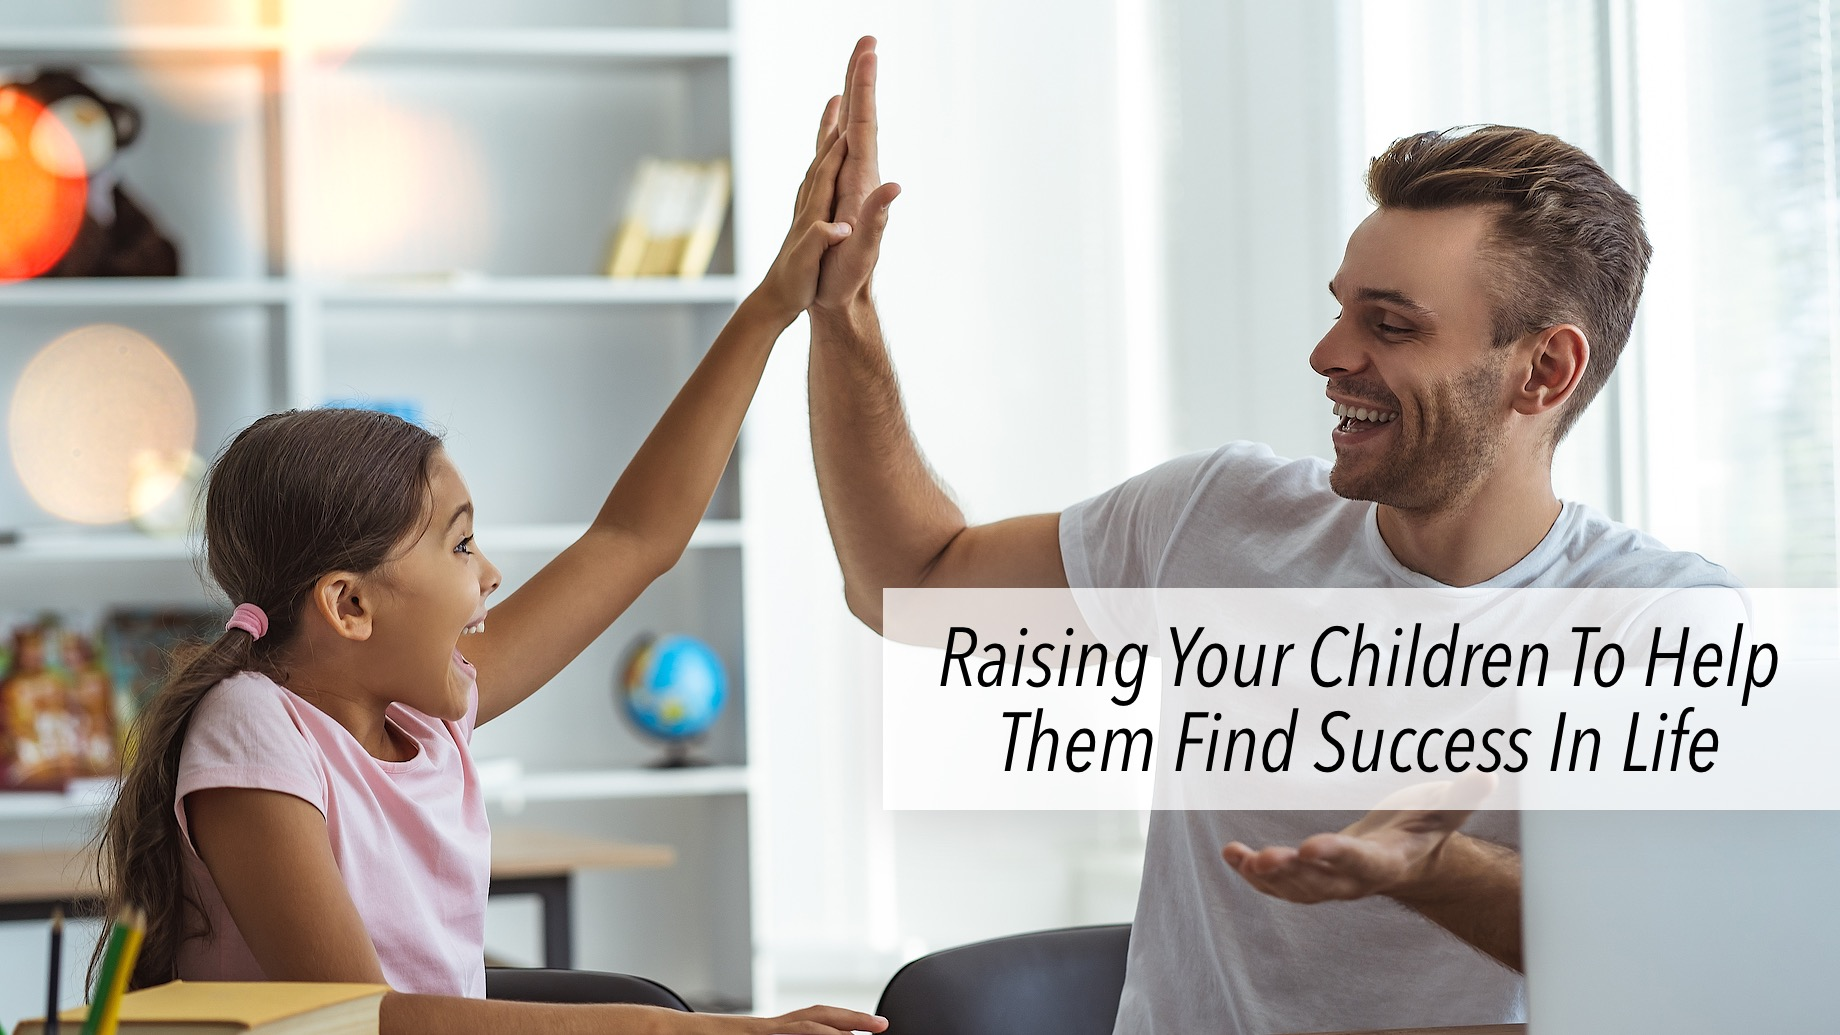 Raising Your Children To Help Them Find Success In Life